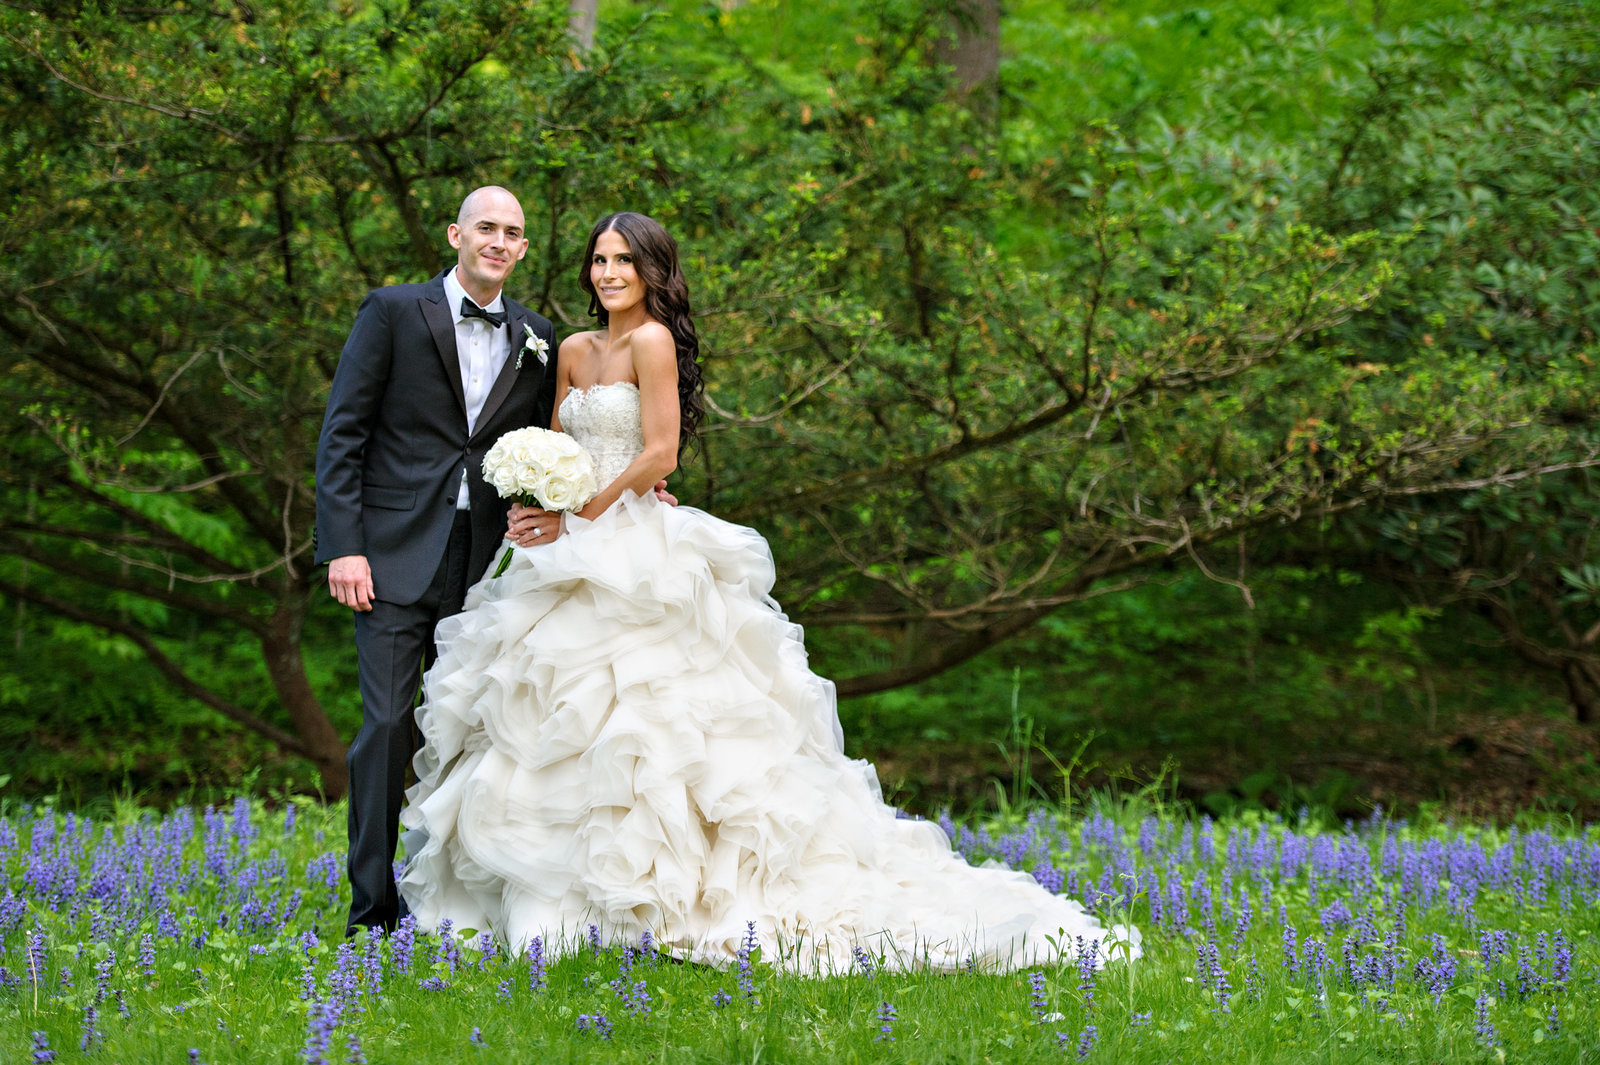 A wedding couple pose for a portrait in the flowers at Holly Hedge Estate.